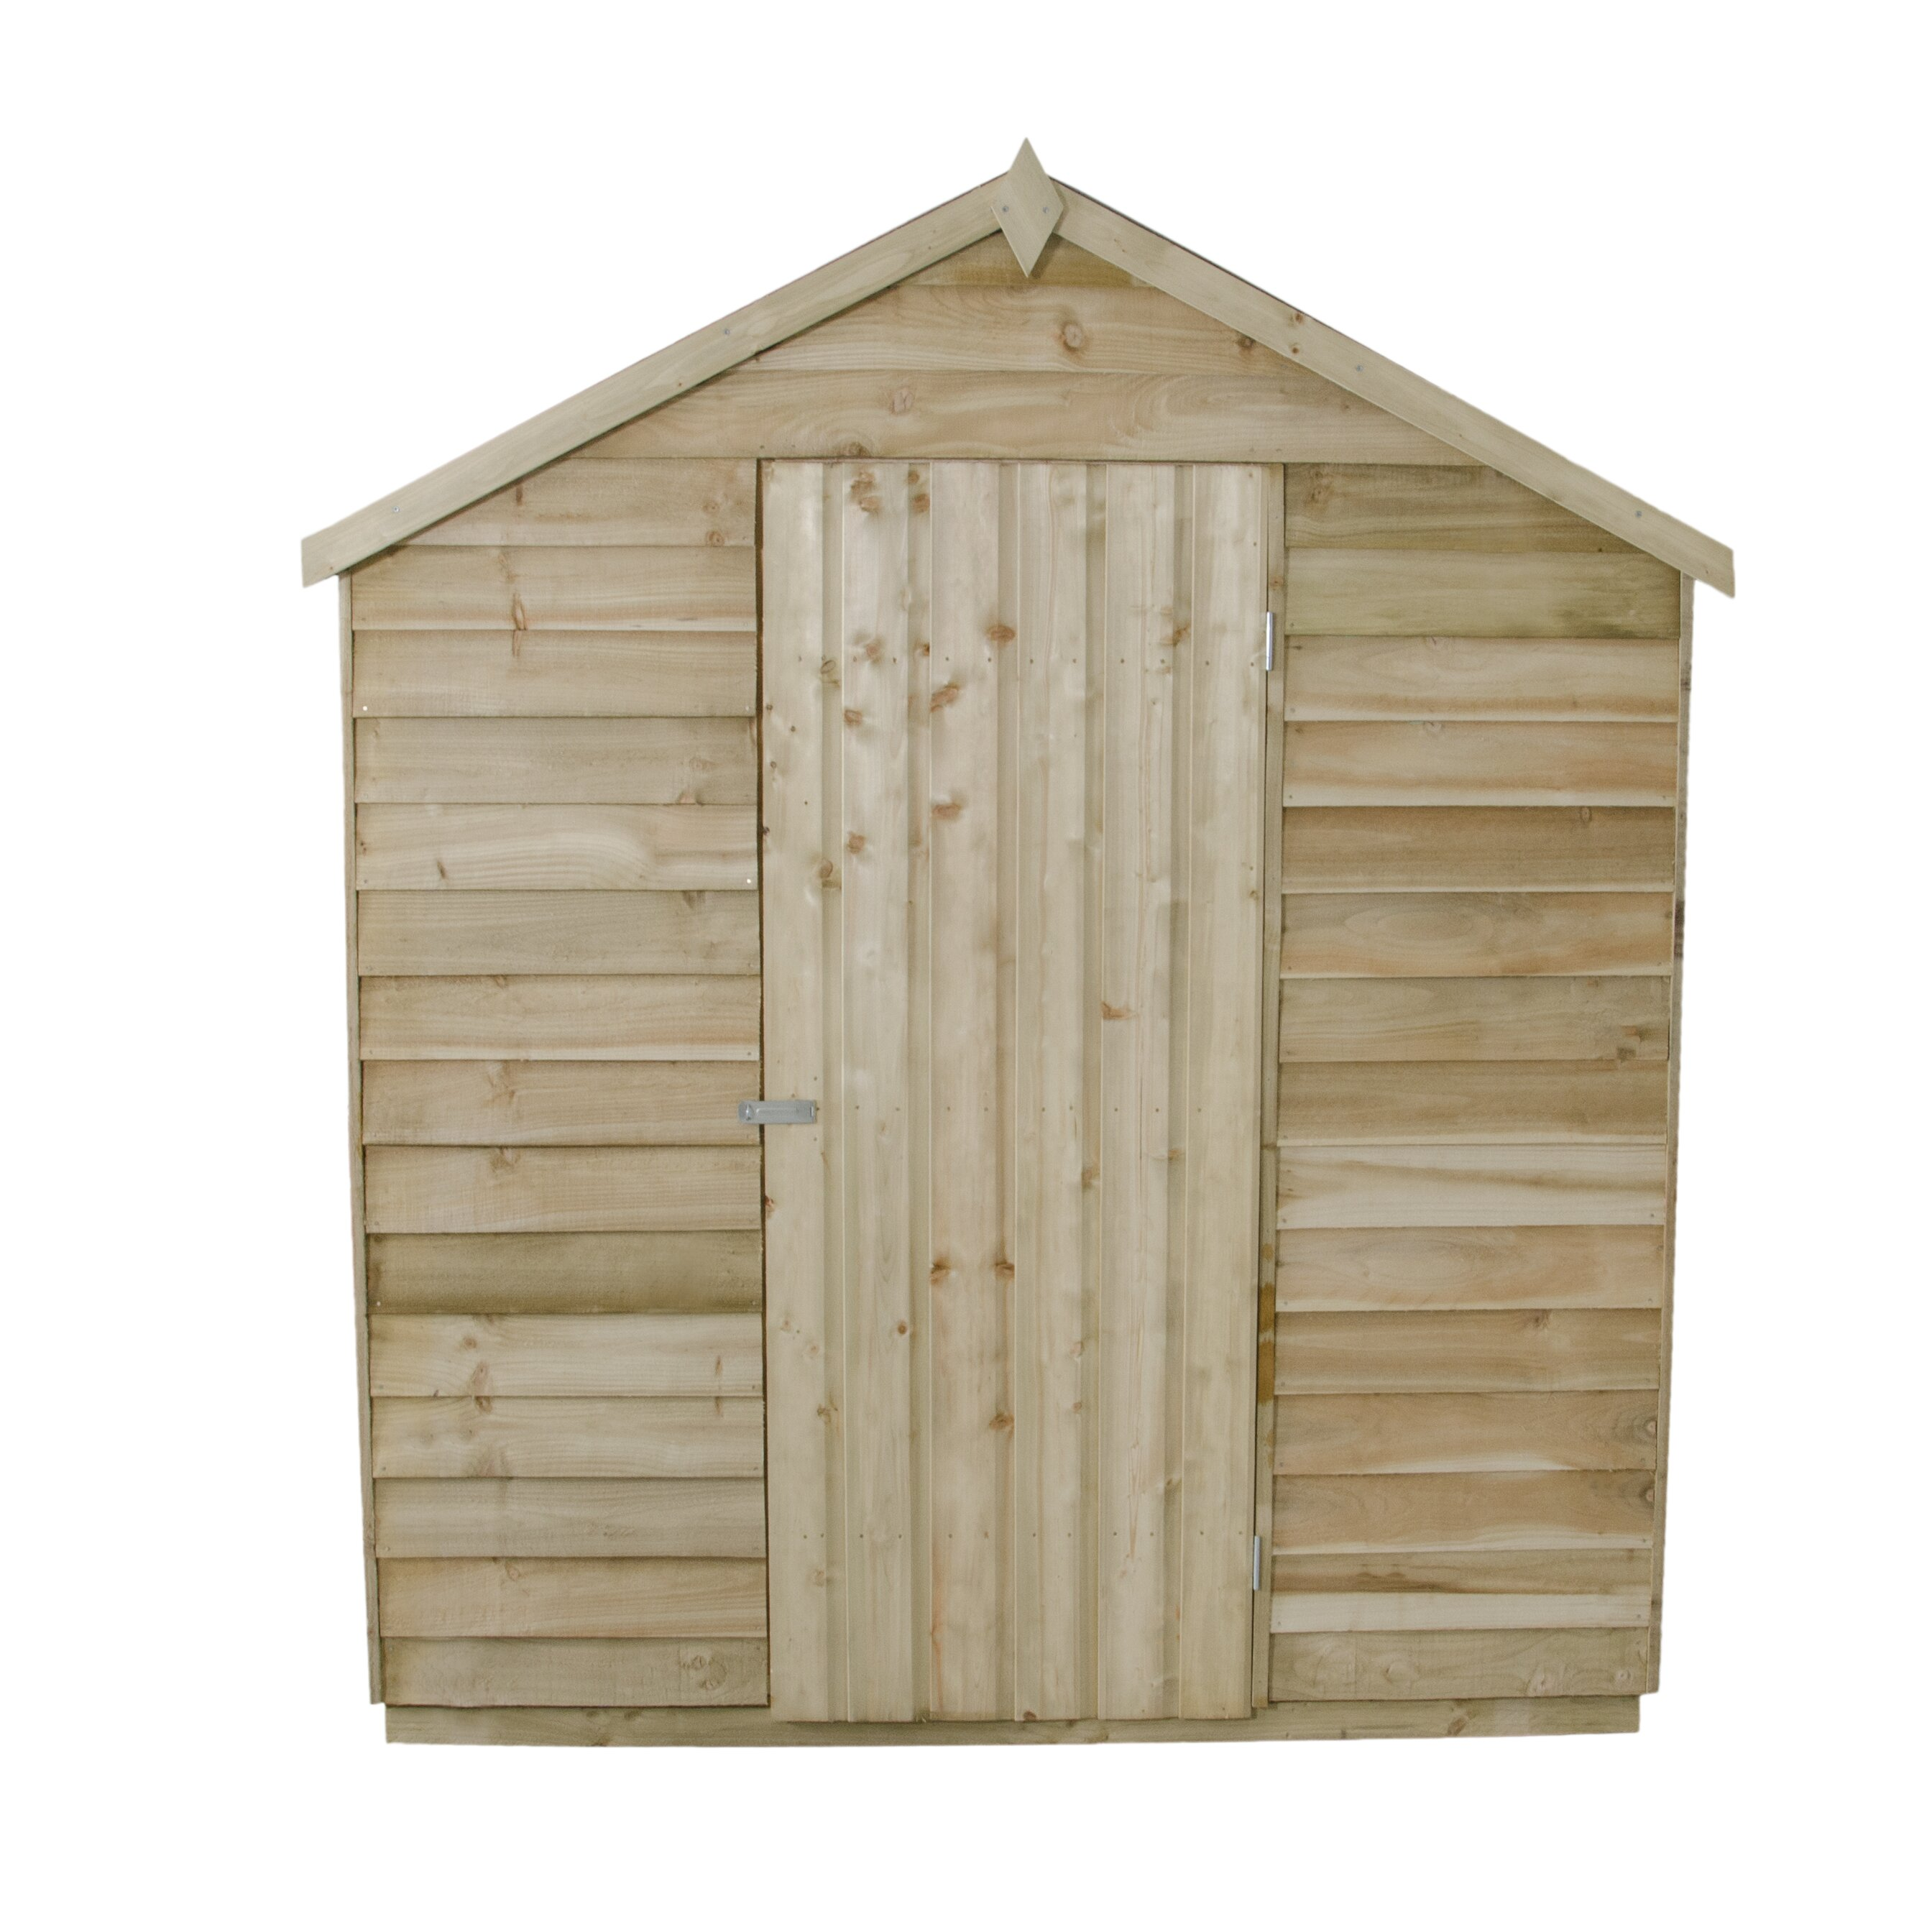 Forest garden 6 x 8 wooden storage shed wayfair uk for Garden shed 8 x 6